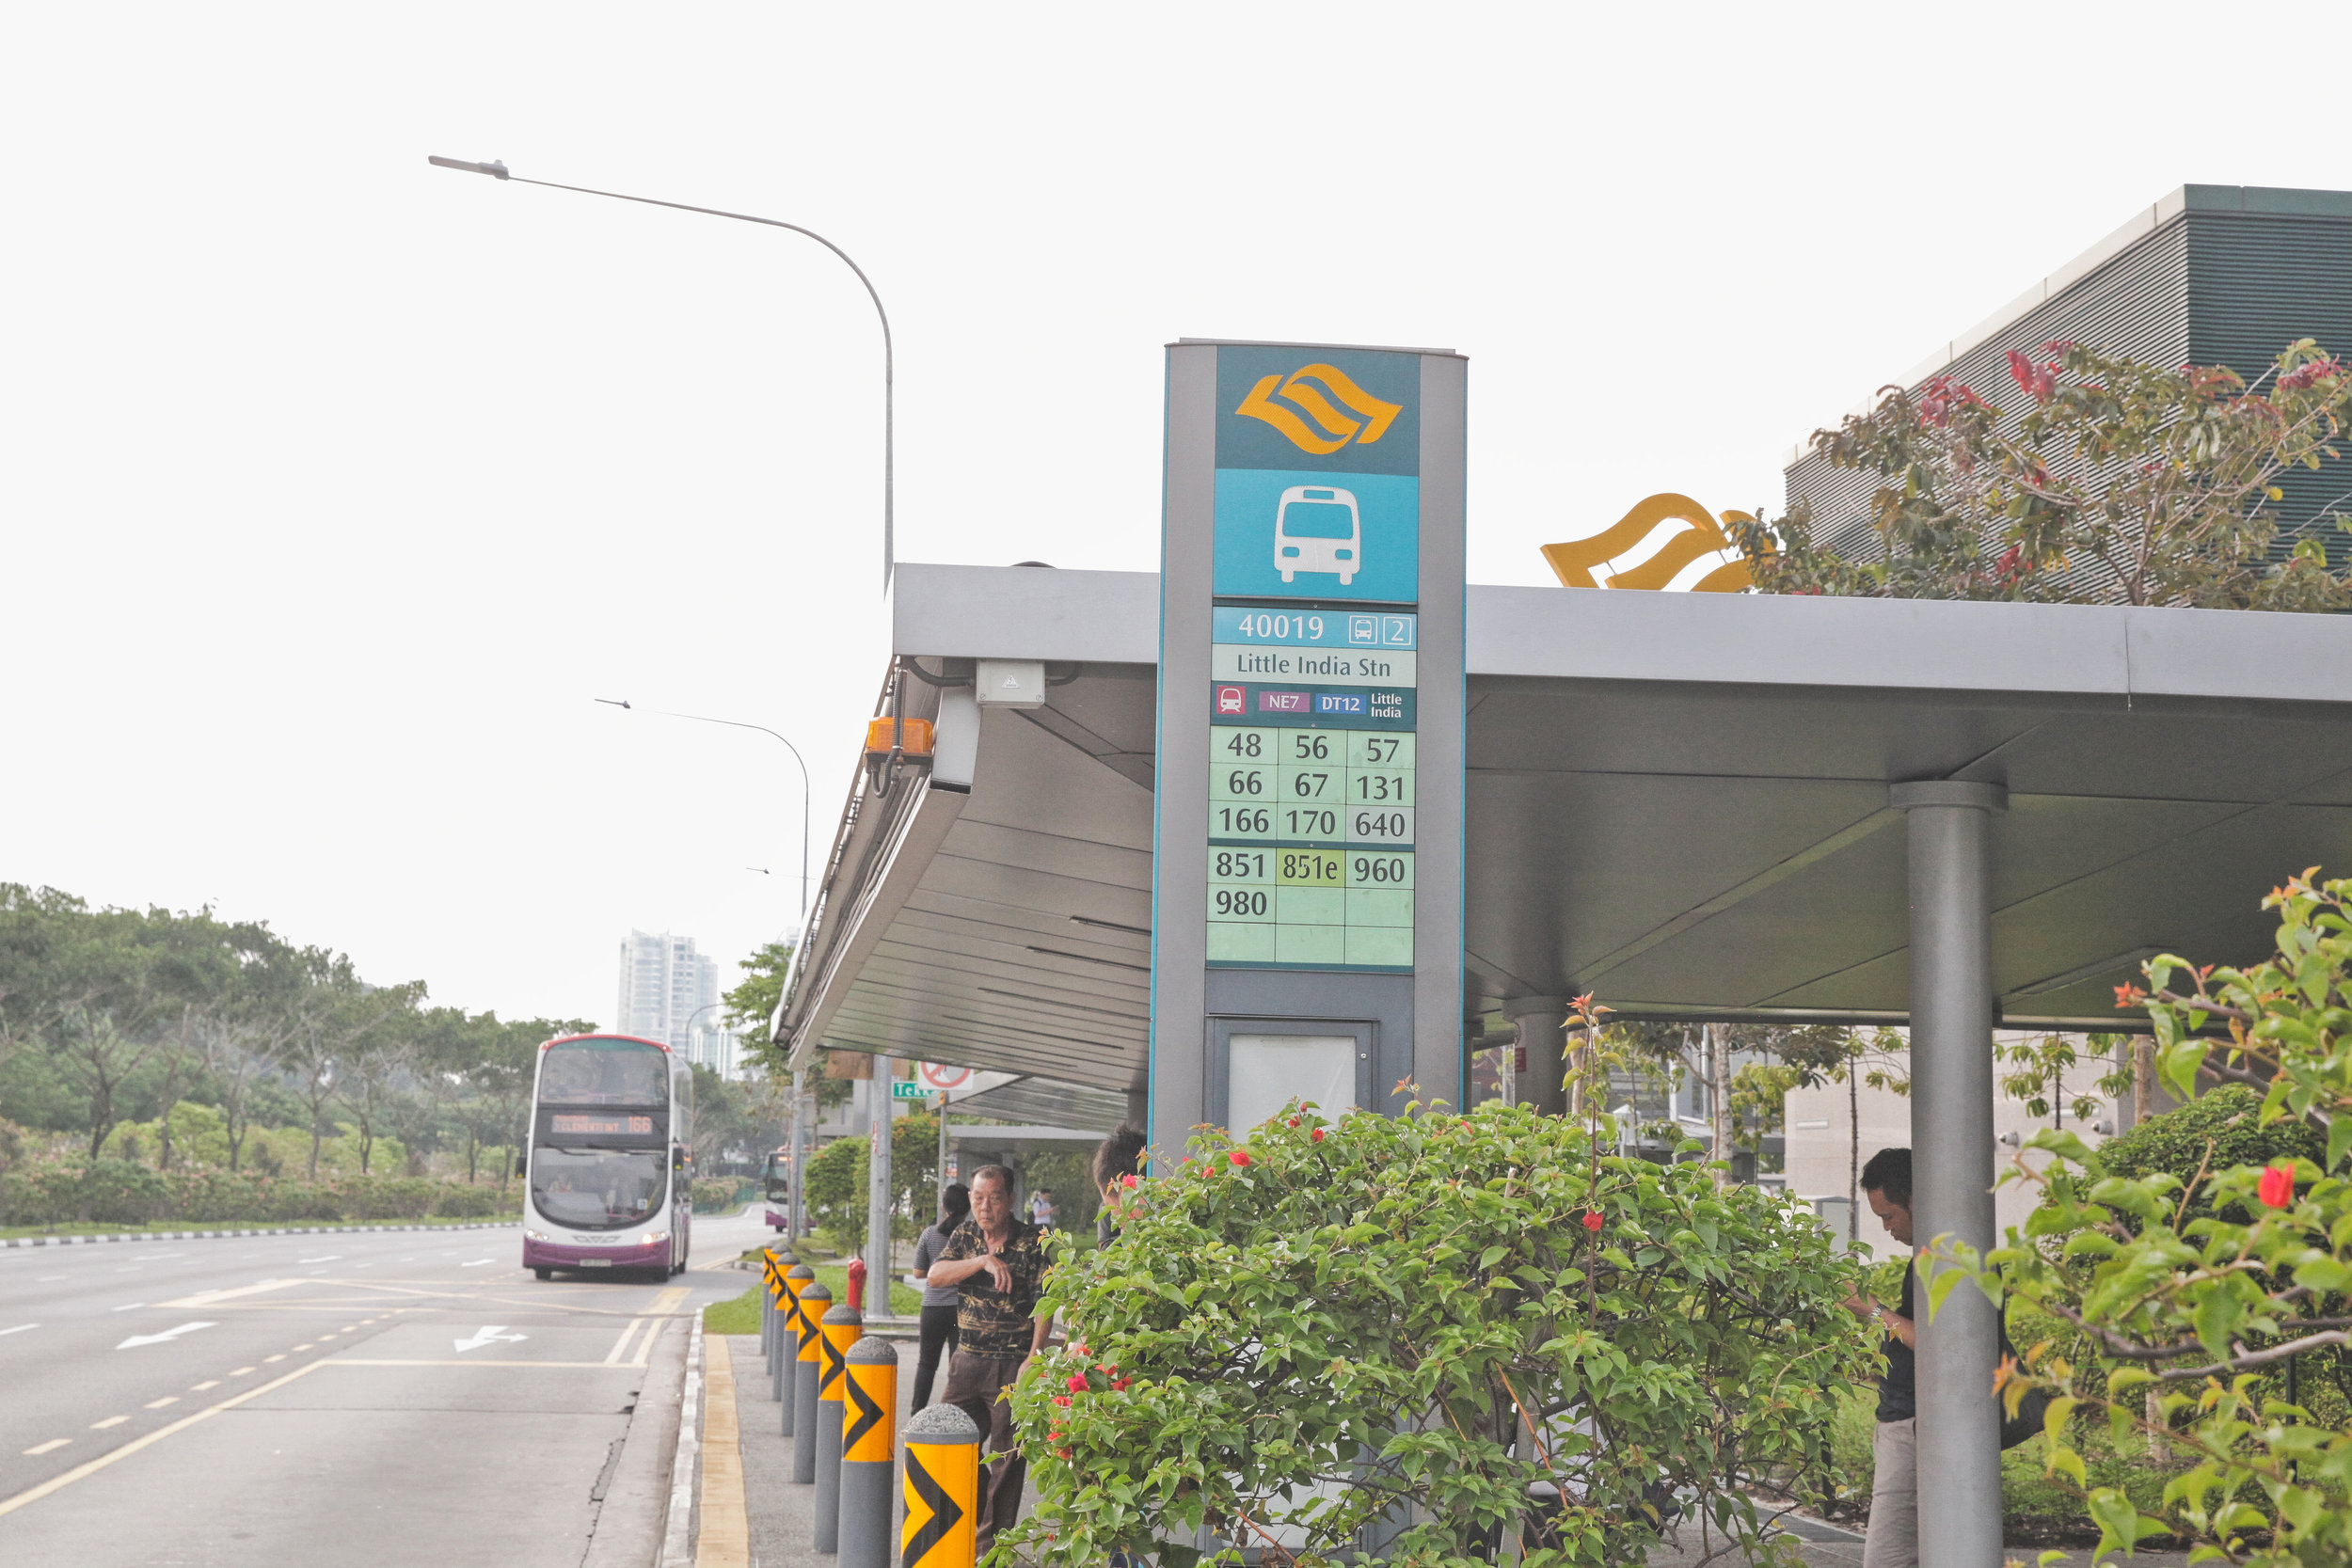 """1. ALIGHT  AT BUS STOP NO: 40019  """"LITTLE INDIA STN""""   BUSES: 48, 56, 57, 66, 67, 131, 166, 170, 640, 851, 851E, 960, 980"""